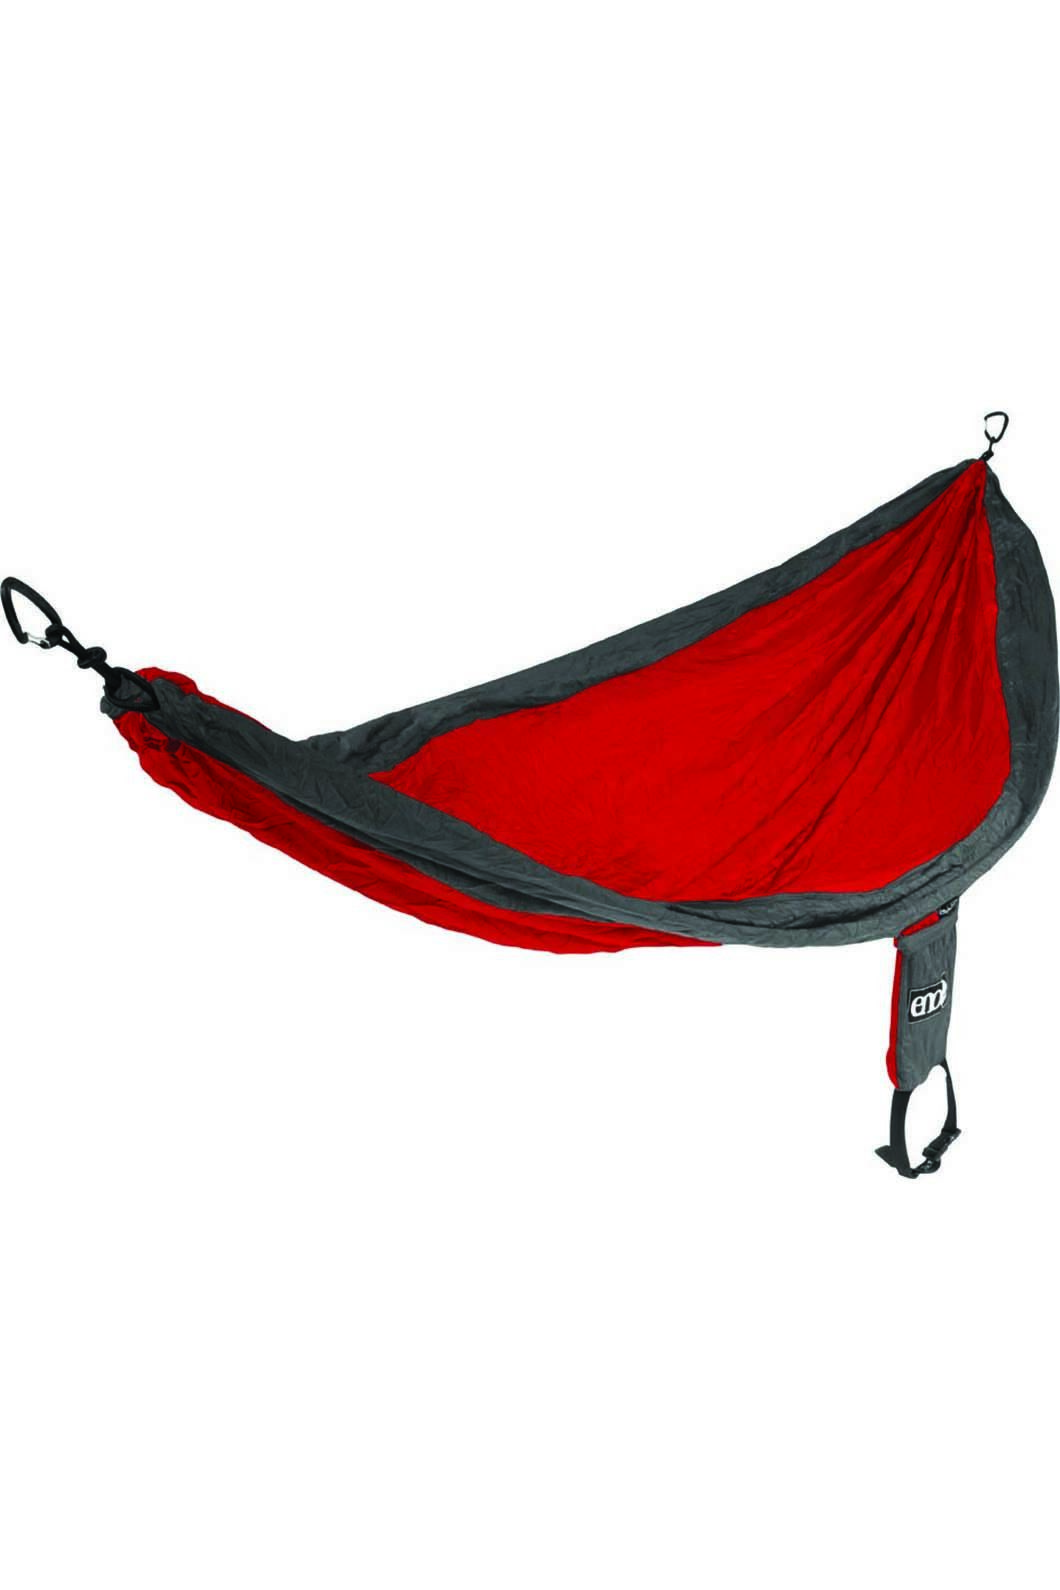 Eagle Nest Outfitters Nest Single Hammock Royal, RED CHARCOAL, hi-res